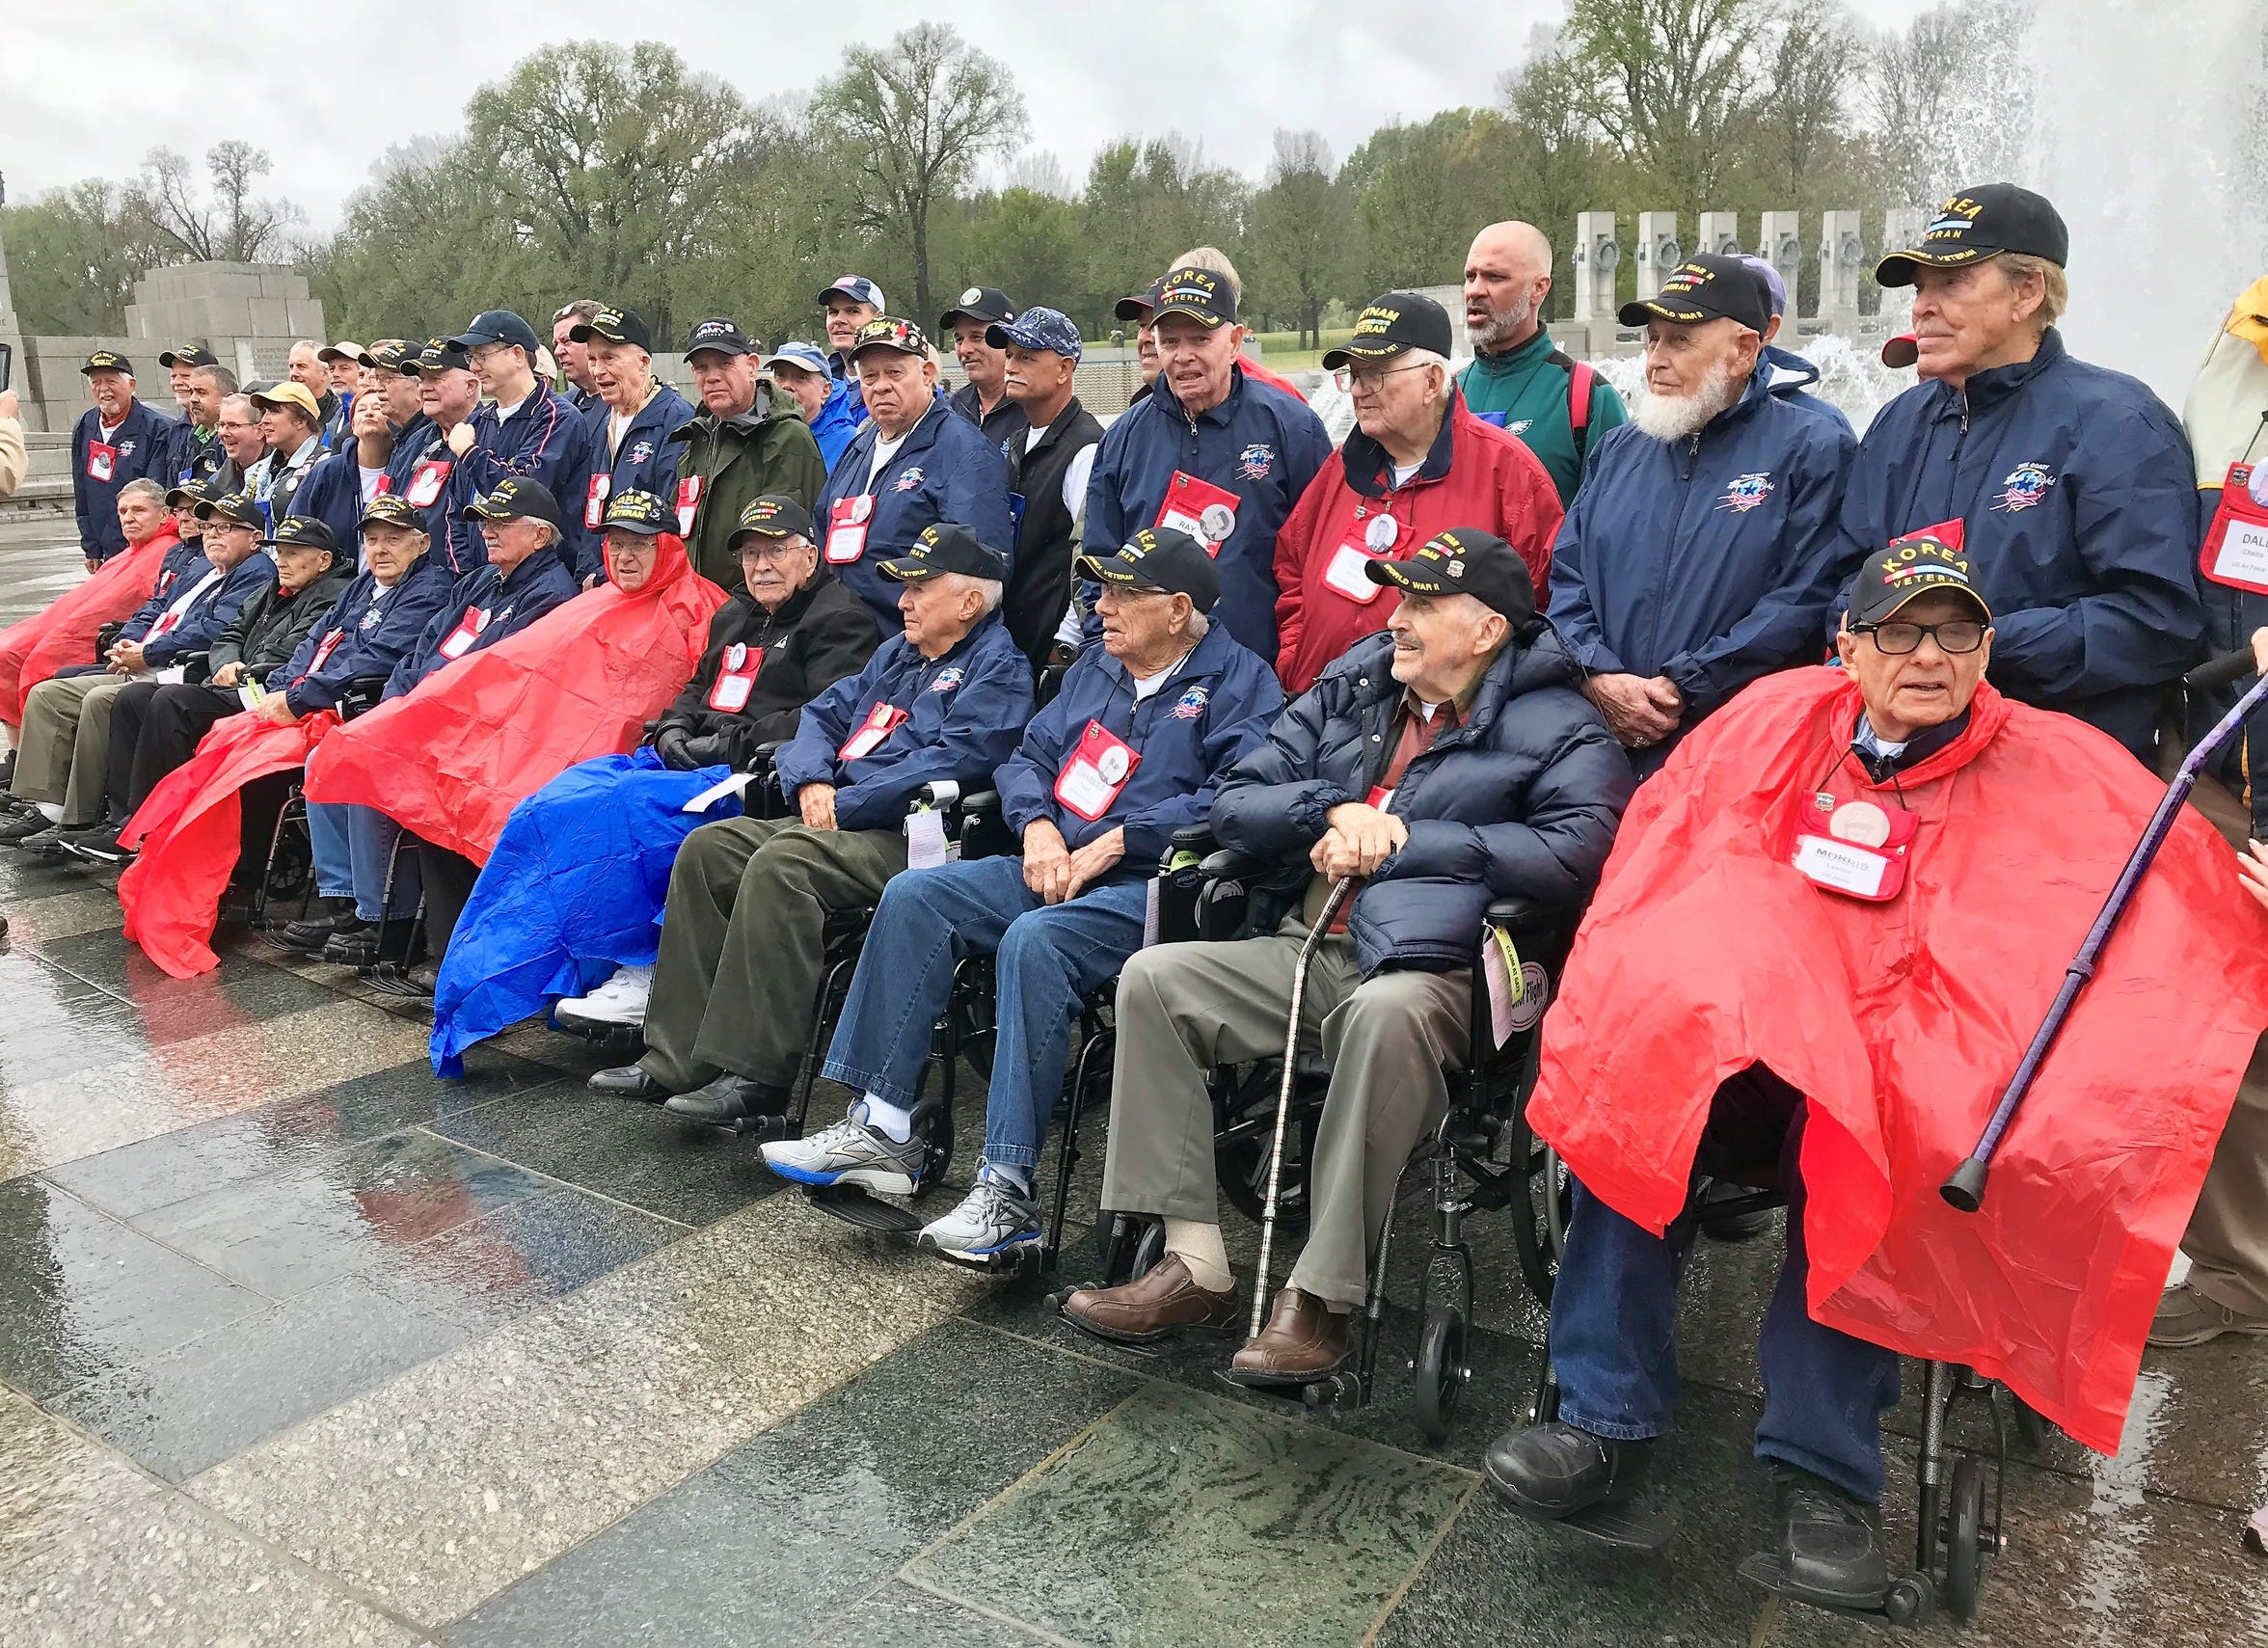 Space Coast Honor Flight attendees pose for photos Oct. 27 at the World War II Memorial in Washington, D.C.